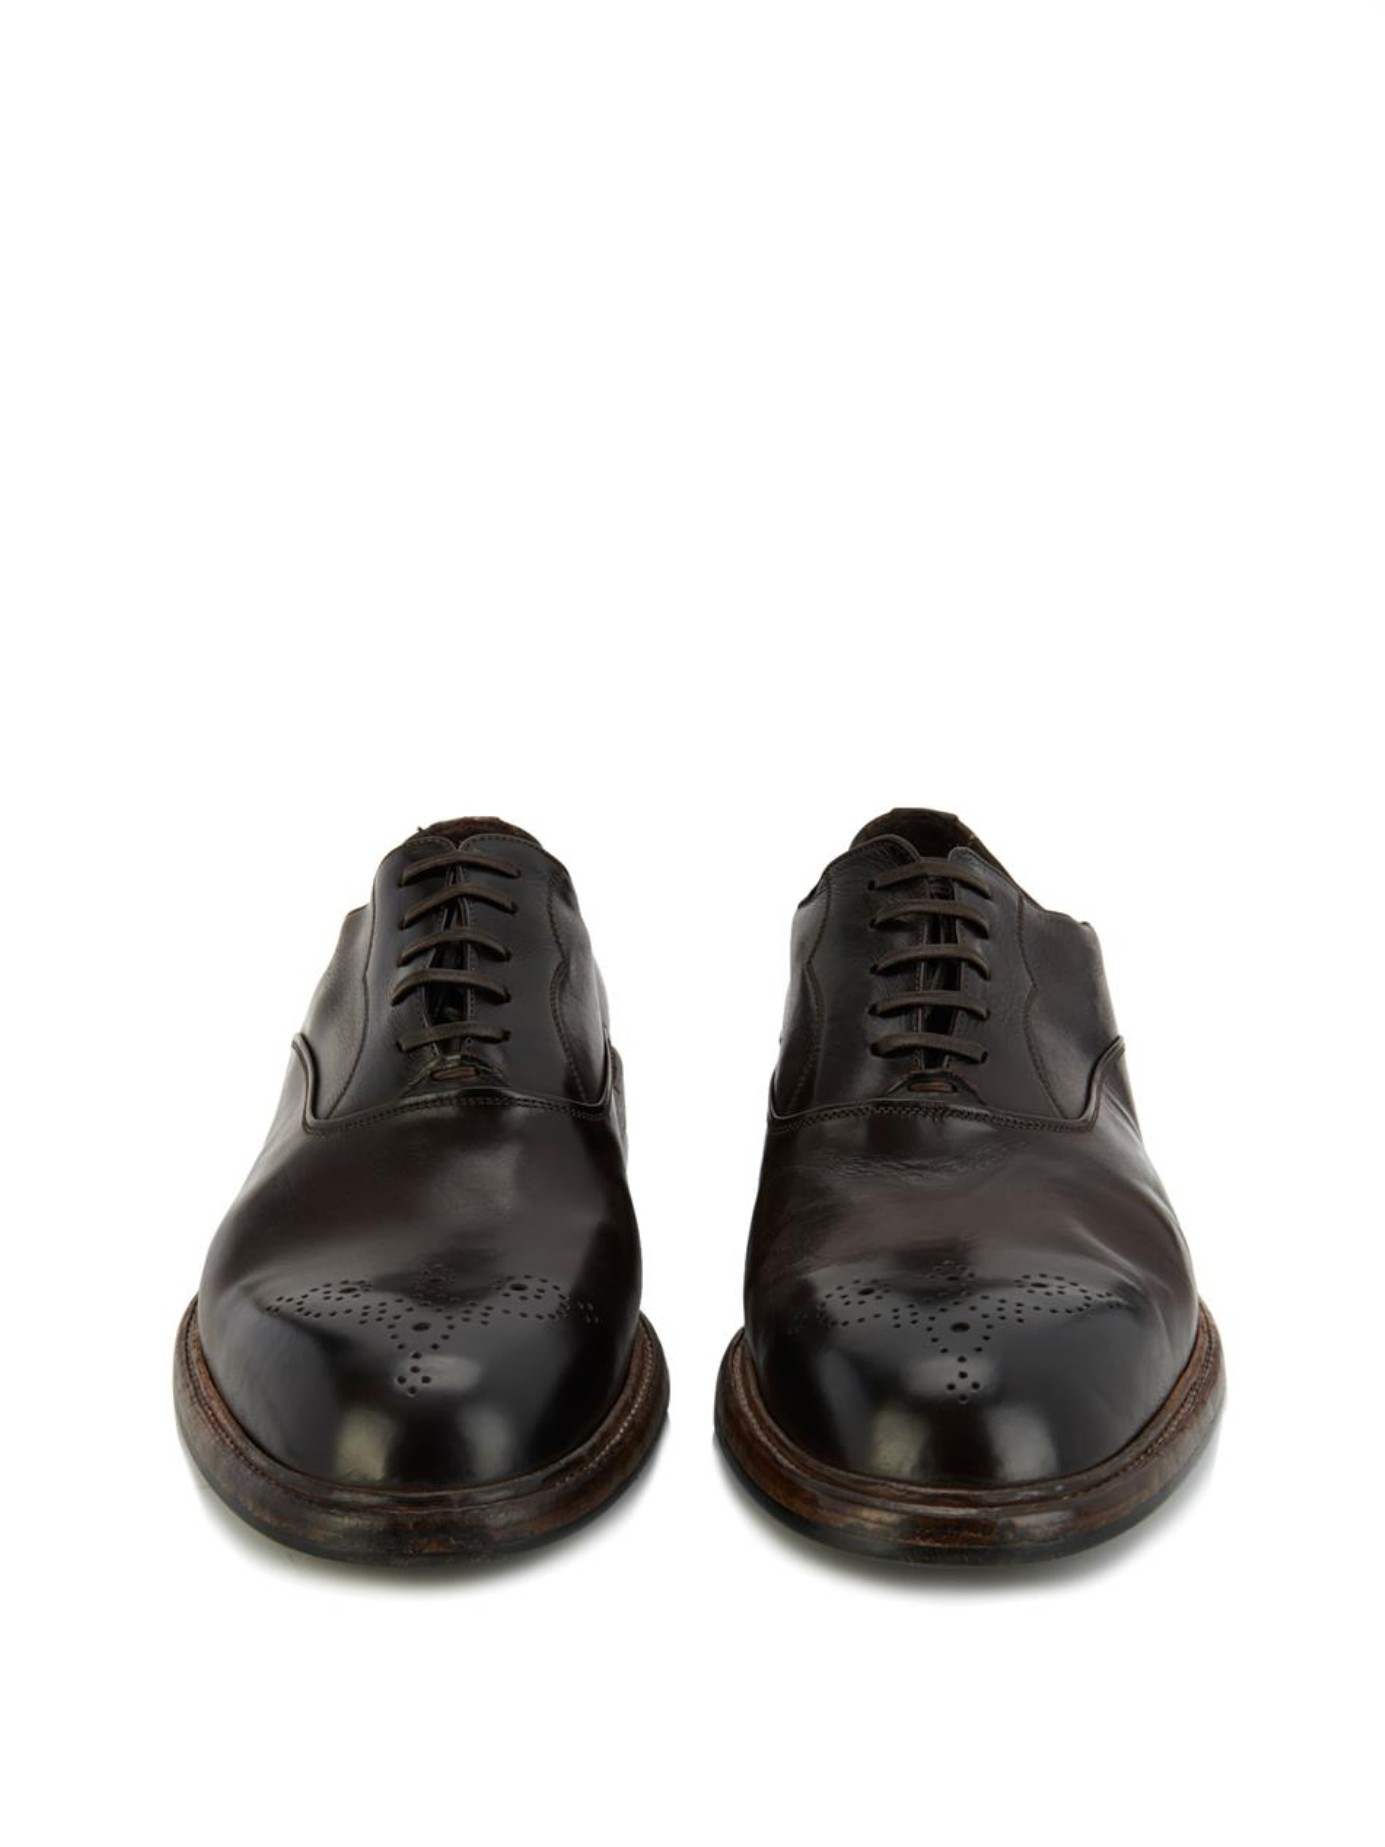 Dolce & Gabbana Leather Brogue Oxfords buy cheap 2015 sale outlet WyTpU61